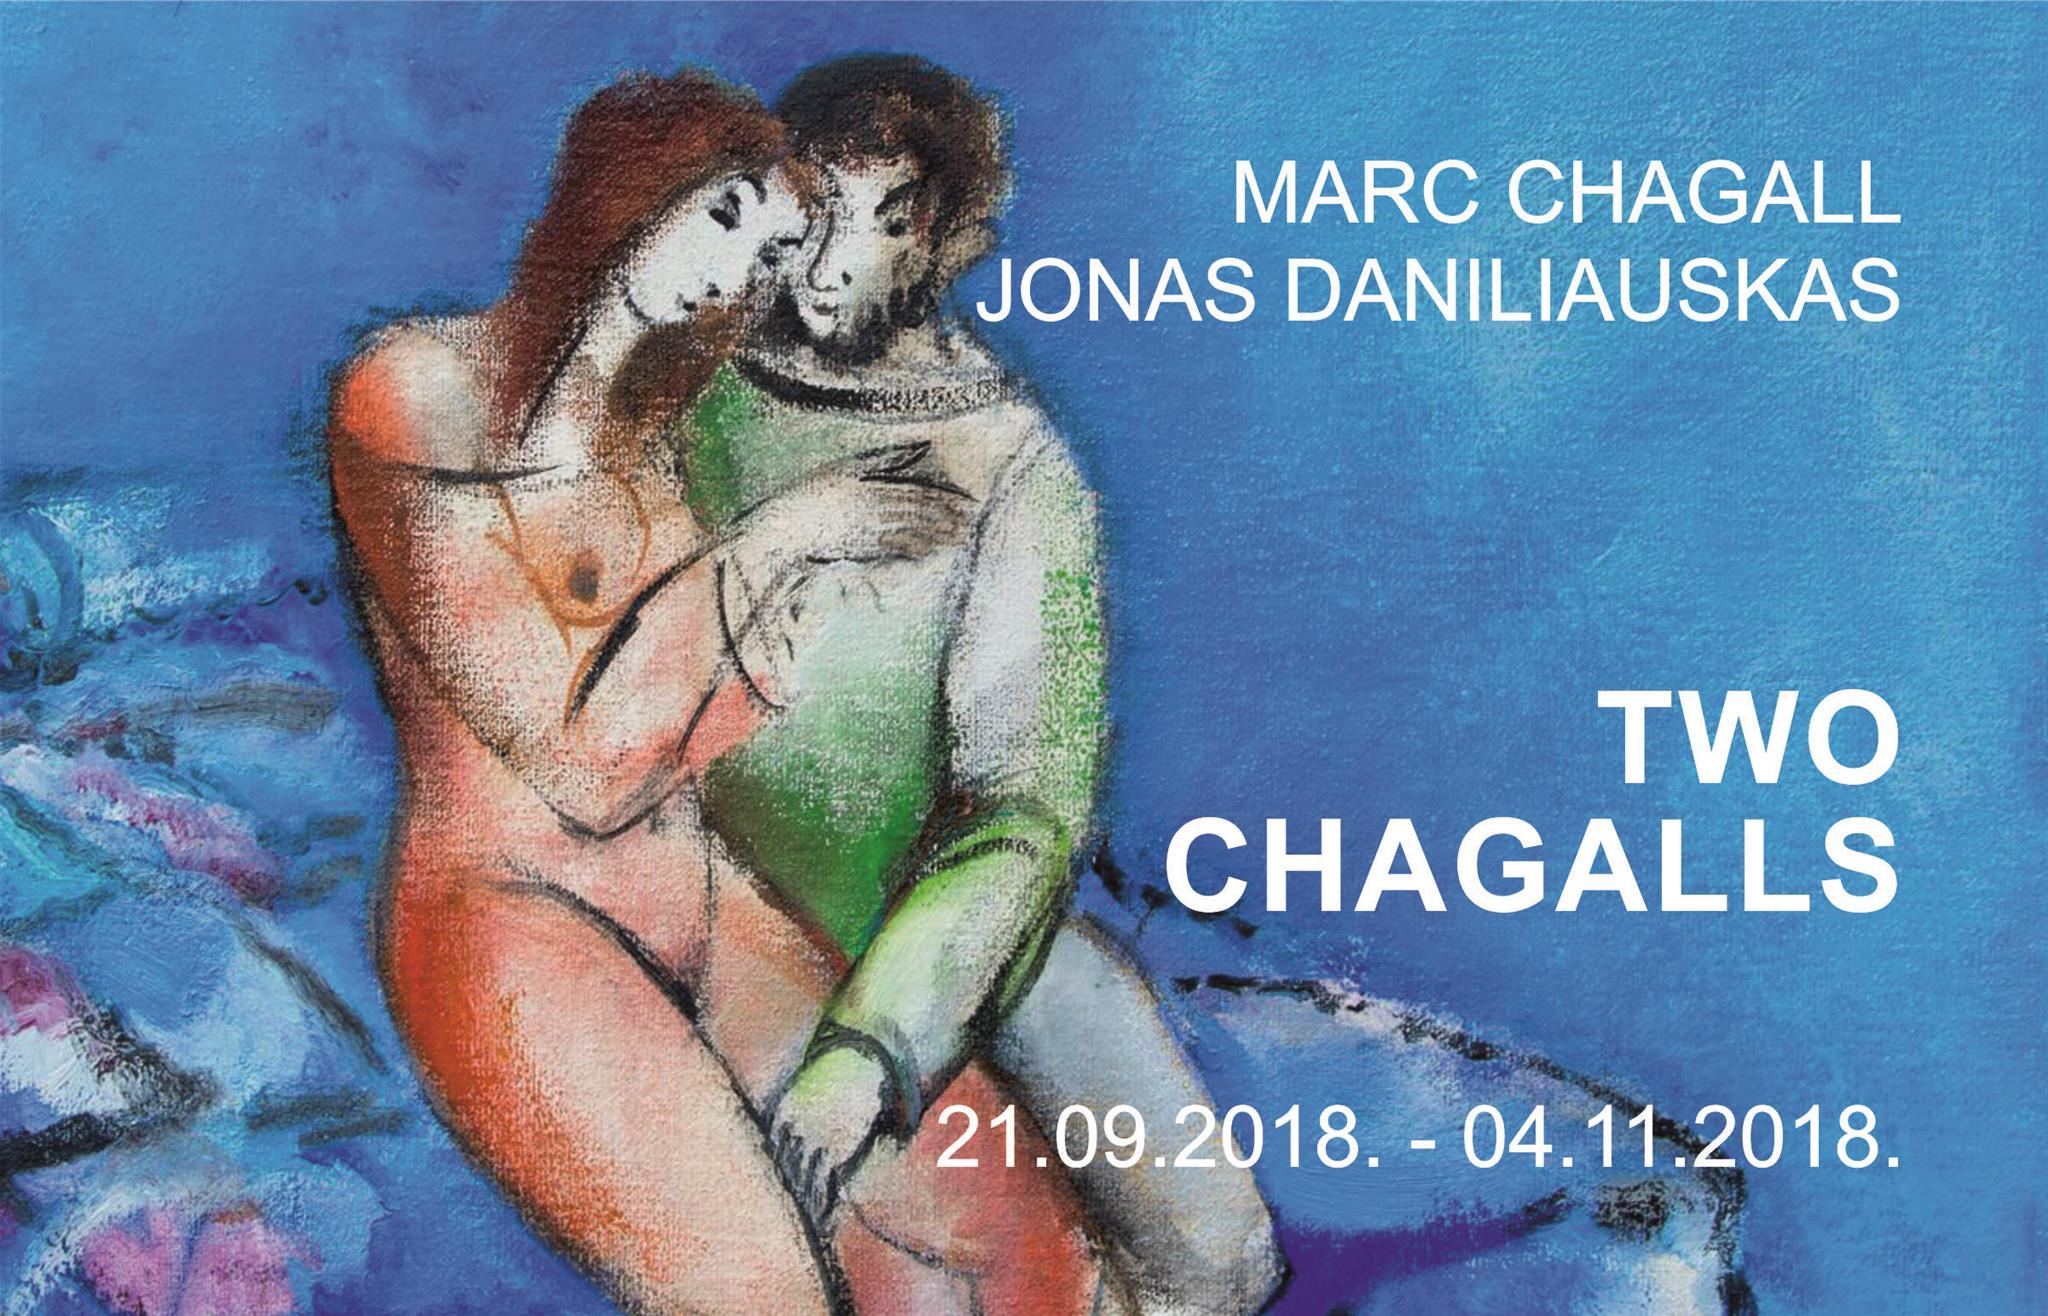 CHAGALL ONE AND TWO